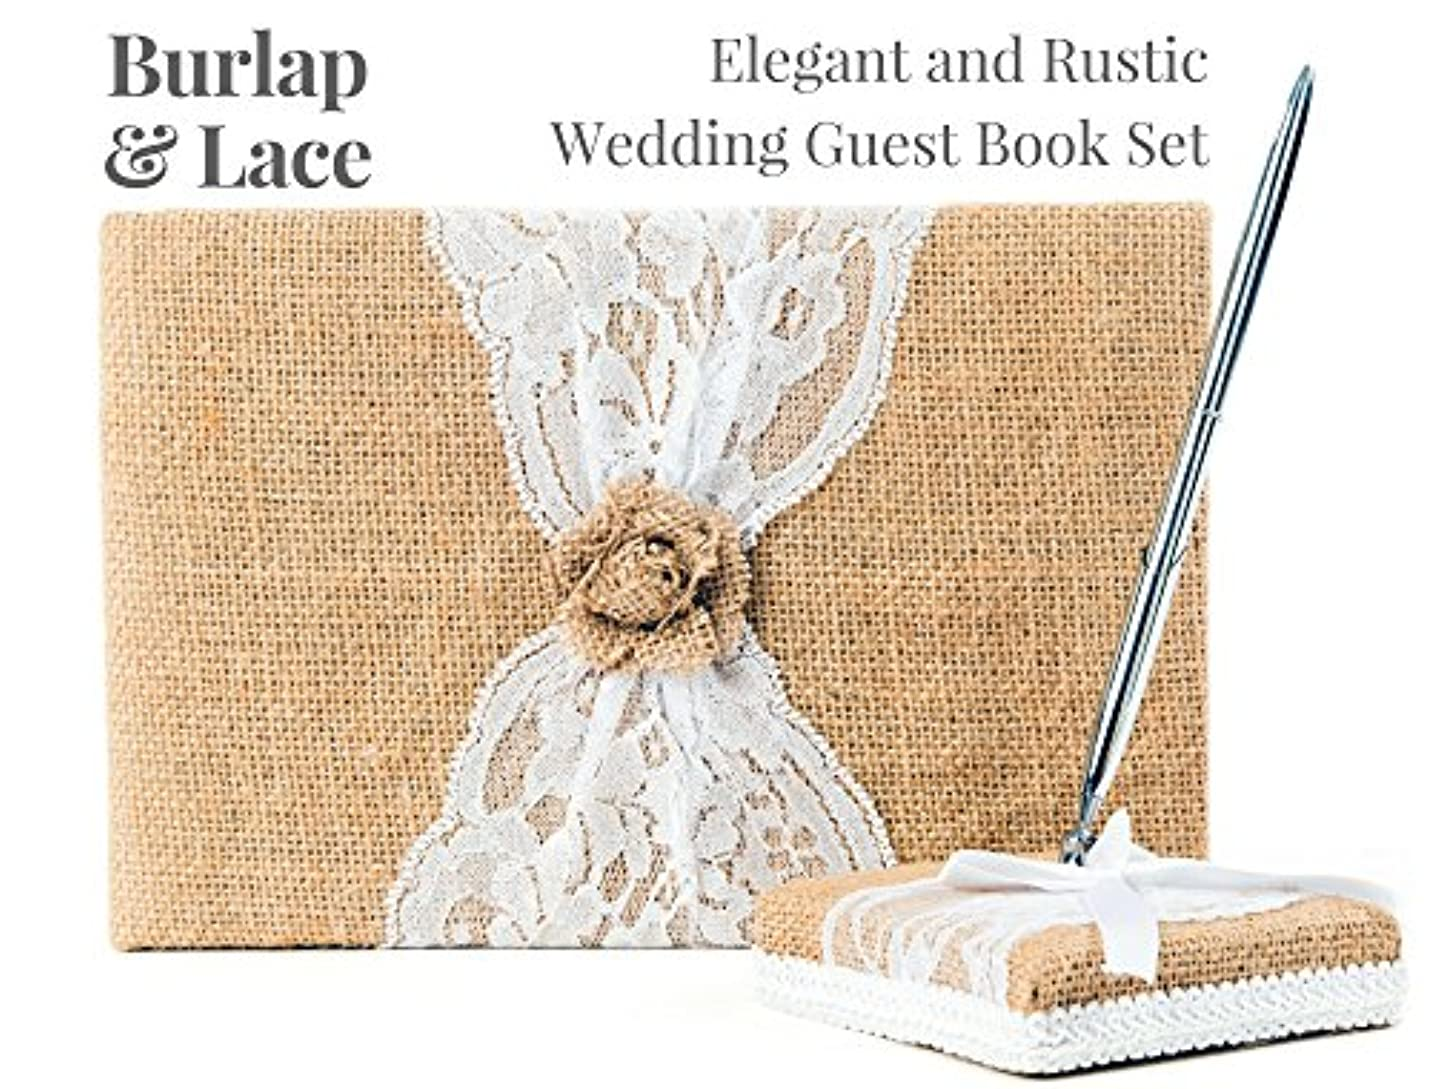 Rustic Wedding Guest Book Made of Burlap and Lace - Includes Burlap Pen Holder and Silver Pen - 120 Lined Pages for Guest Thoughts - Comes in Gift Box (Burlap Flower) nqkrhpidacjbh079